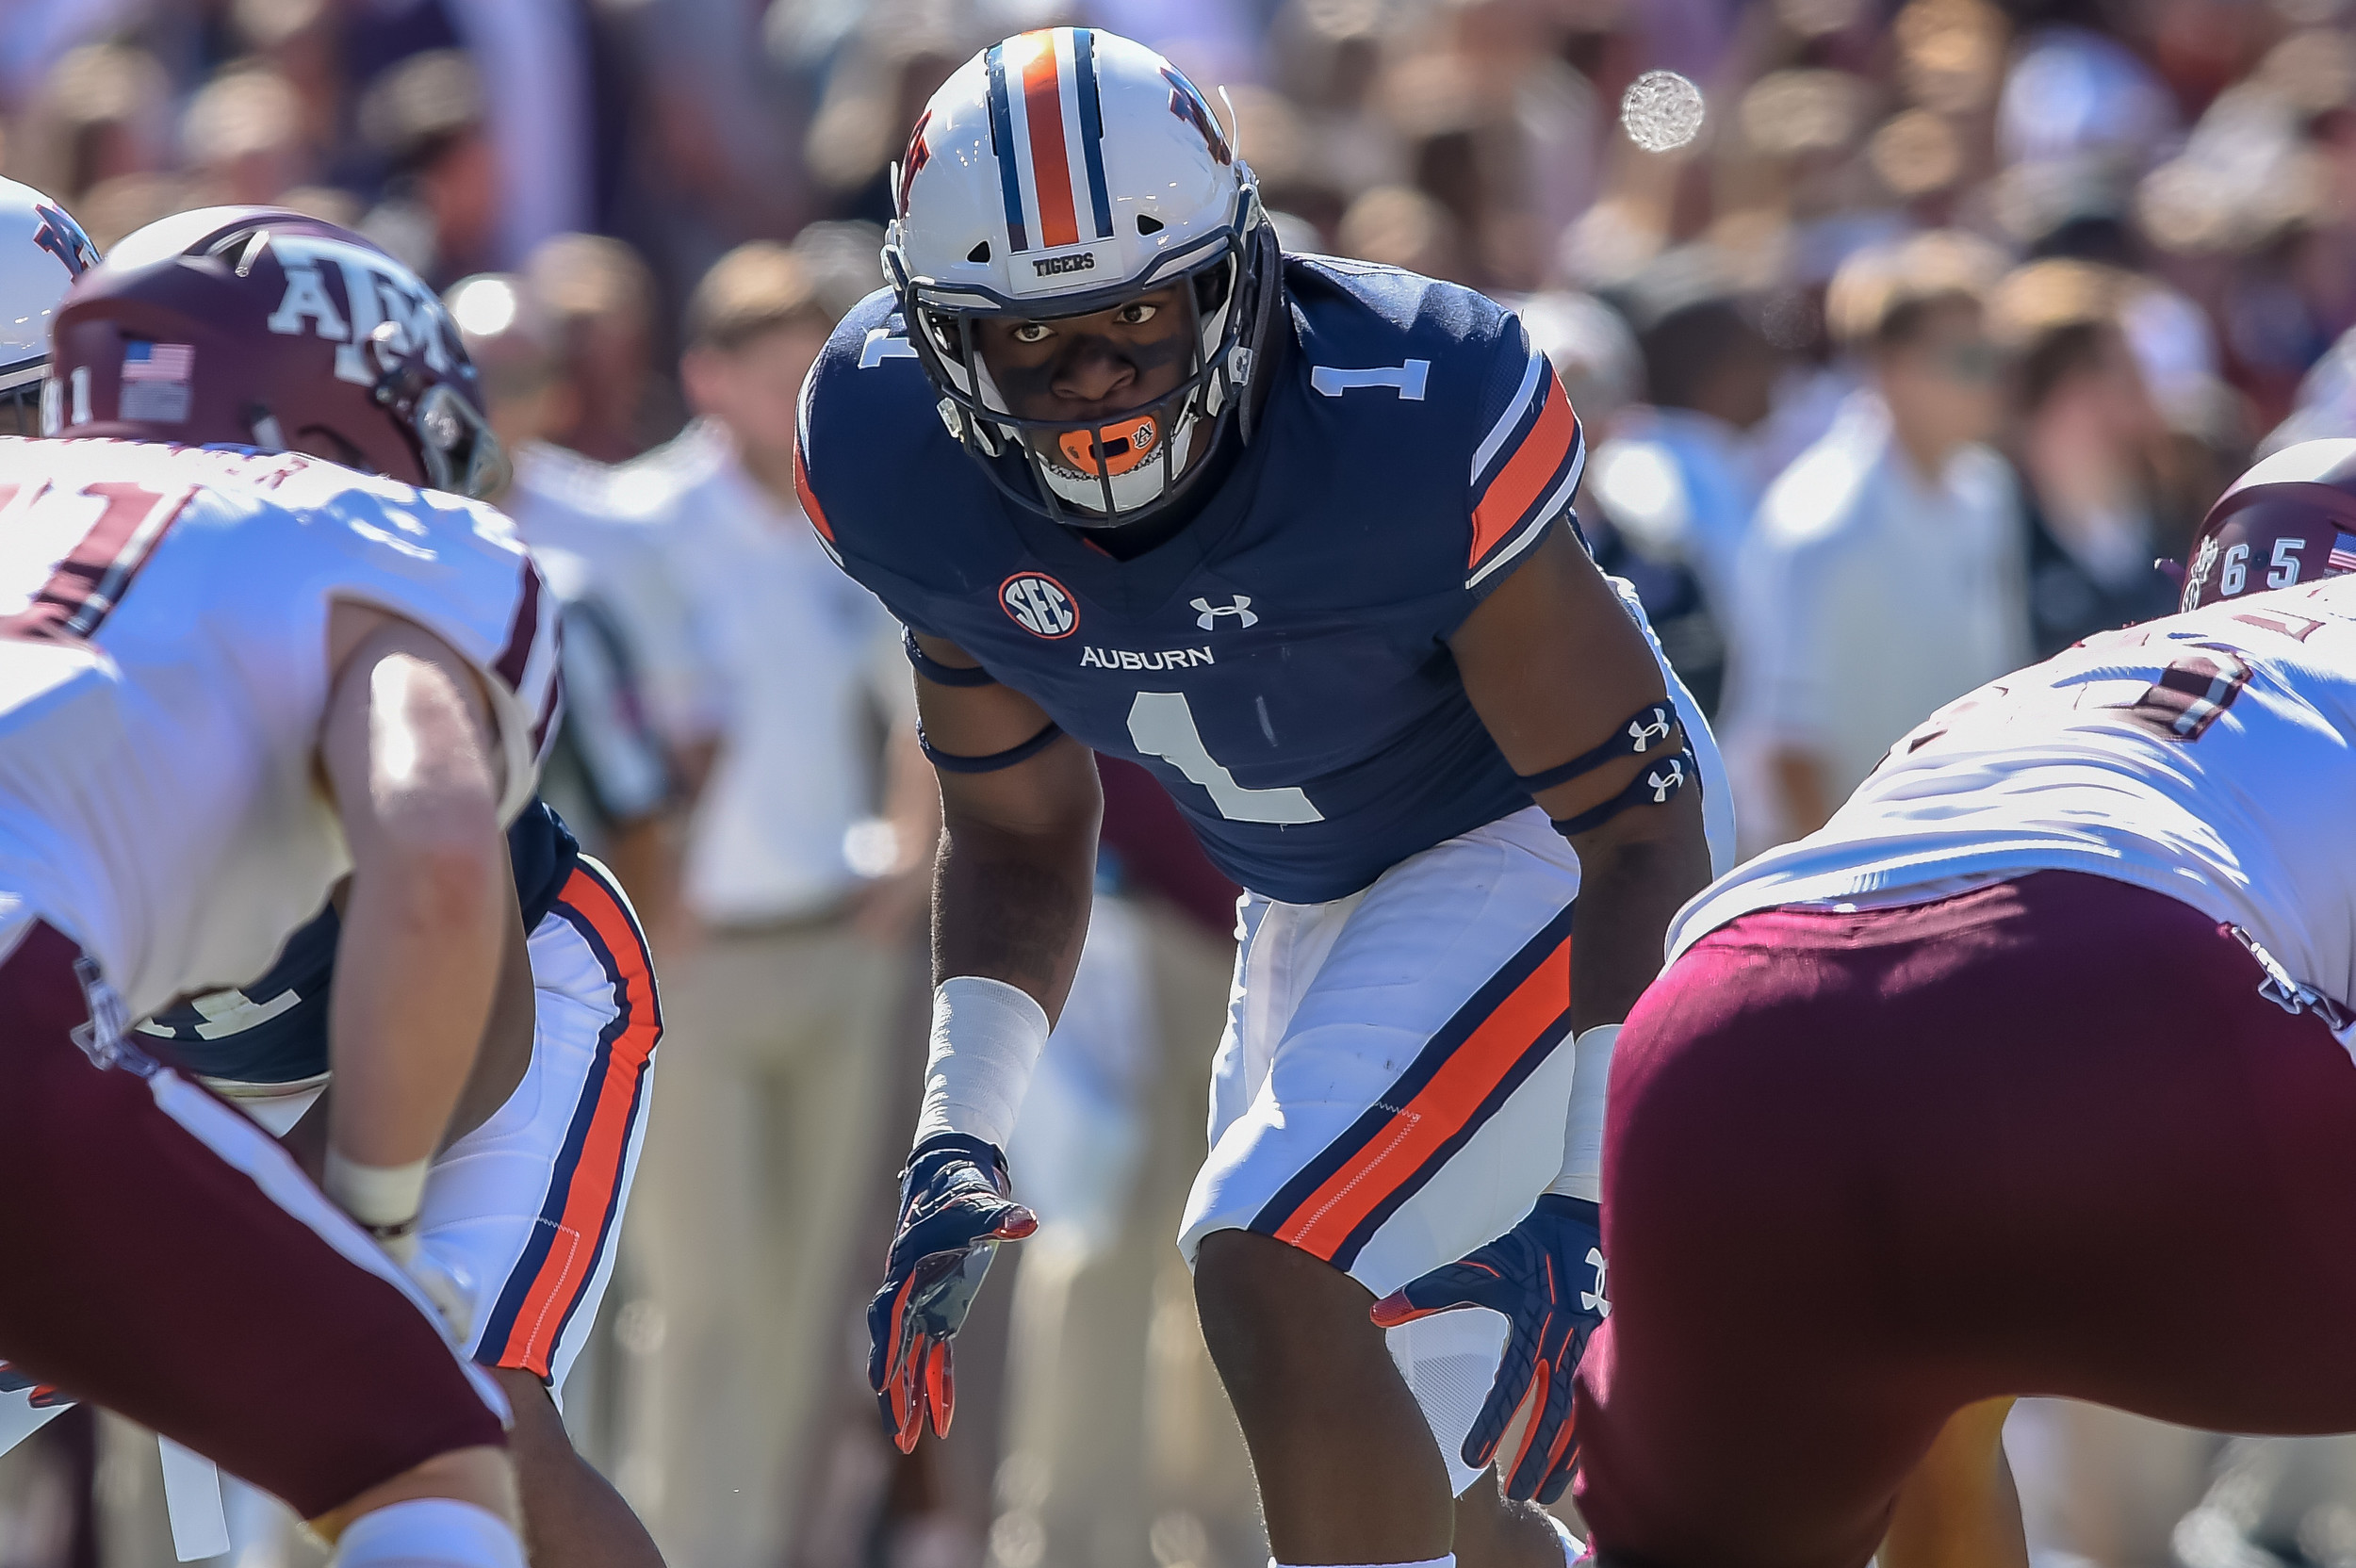 Auburn Tigers defensive lineman Marlon Davidson (3) during the first half of an NCAA football game against the Texas A&M Aggies Saturday, November 3, 2018, at Jordan-Hare Stadium in Auburn, Ala. (Photo by Jeff Johnsey)